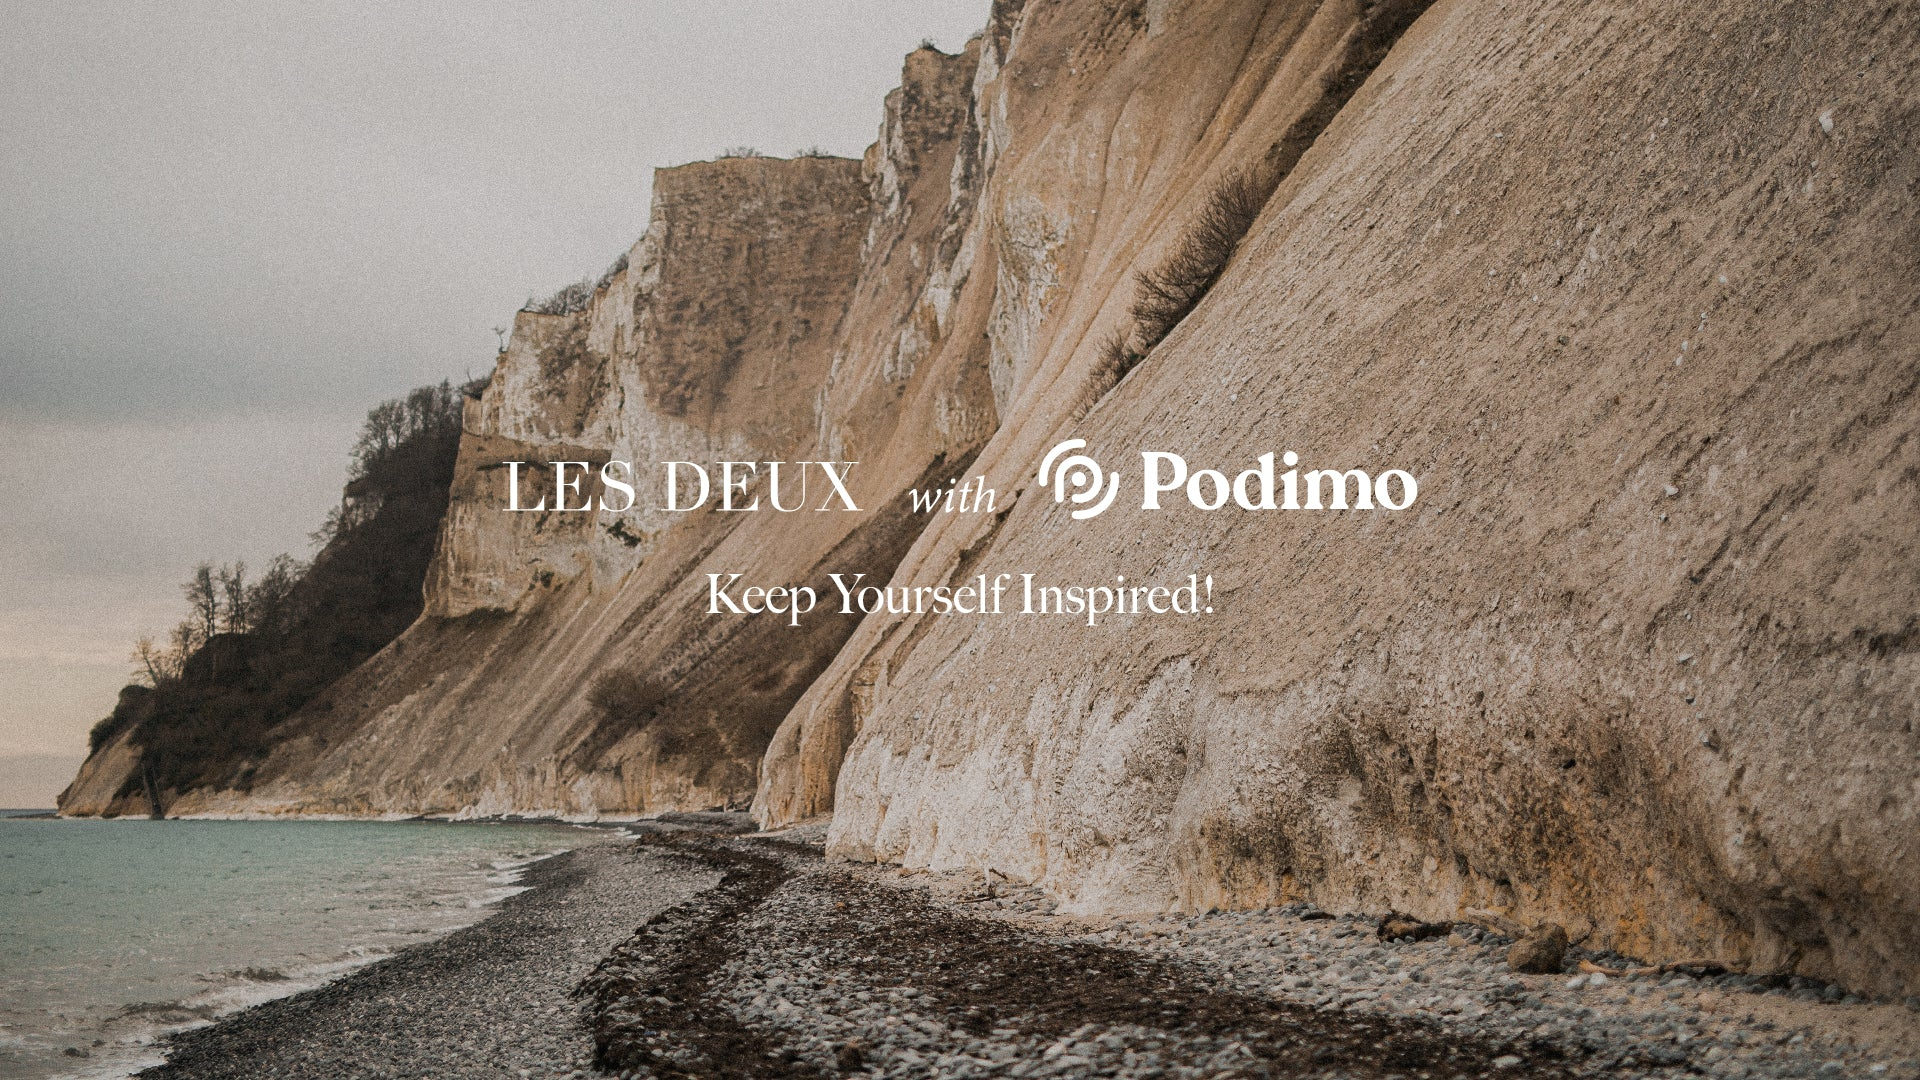 Les Deux and Podimo Are Teaming Up To Keep You Inspired!